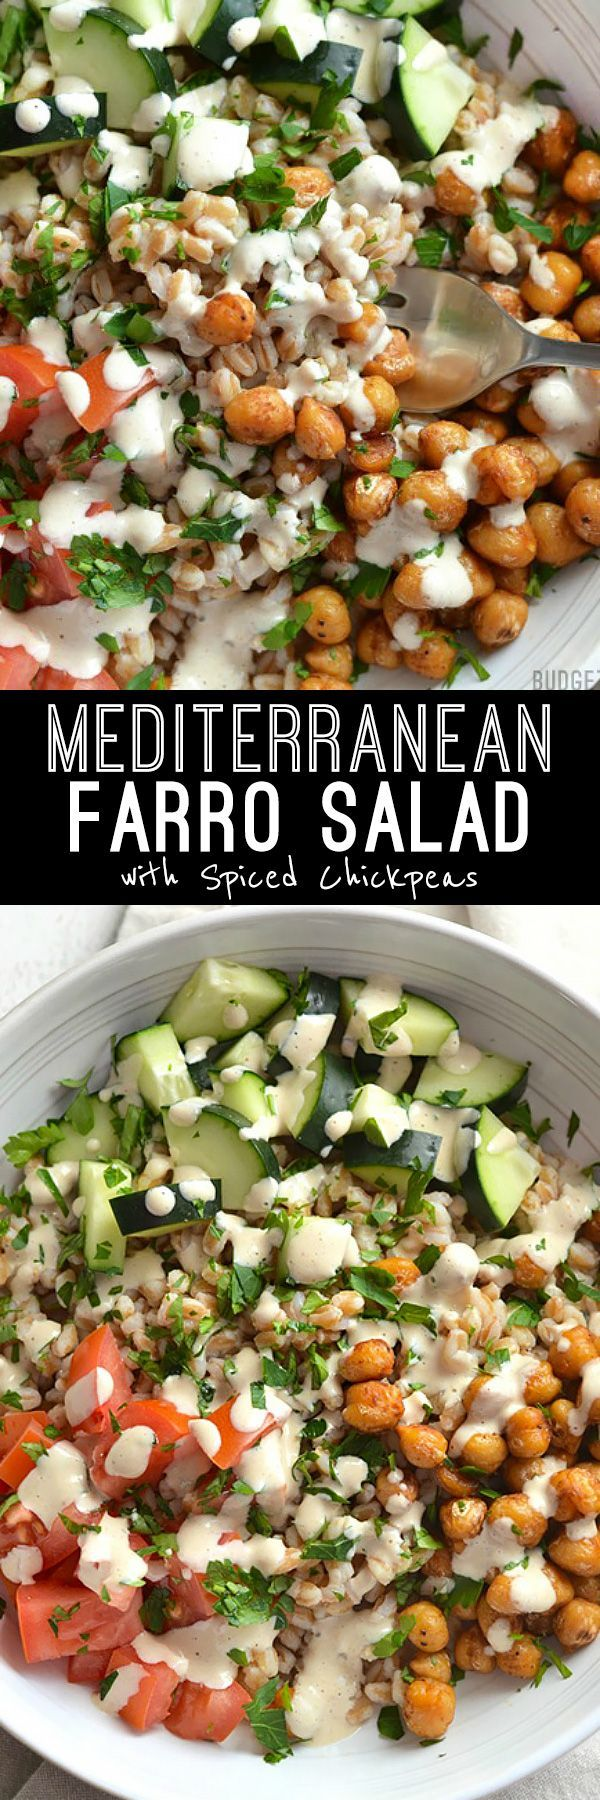 This Mediterranean Farro Salad with Spiced Chickpeas is packed with flavor, texture, and nutrients (and no animal products!).